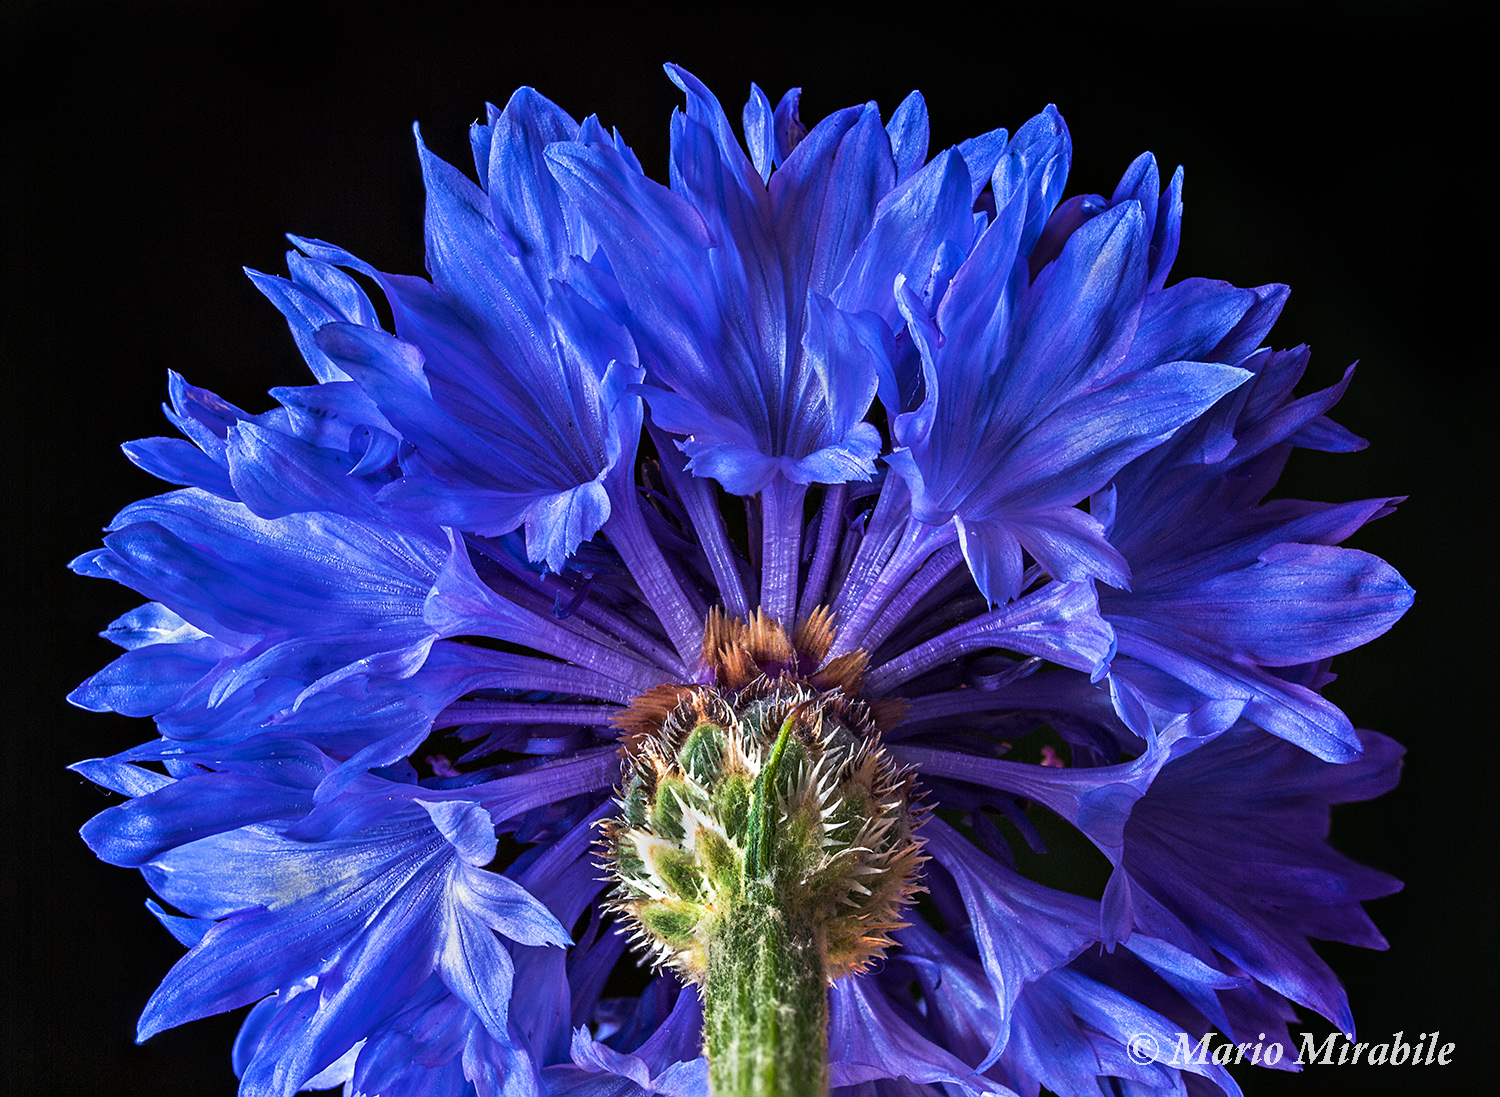 Cornflower blues copy.jpg